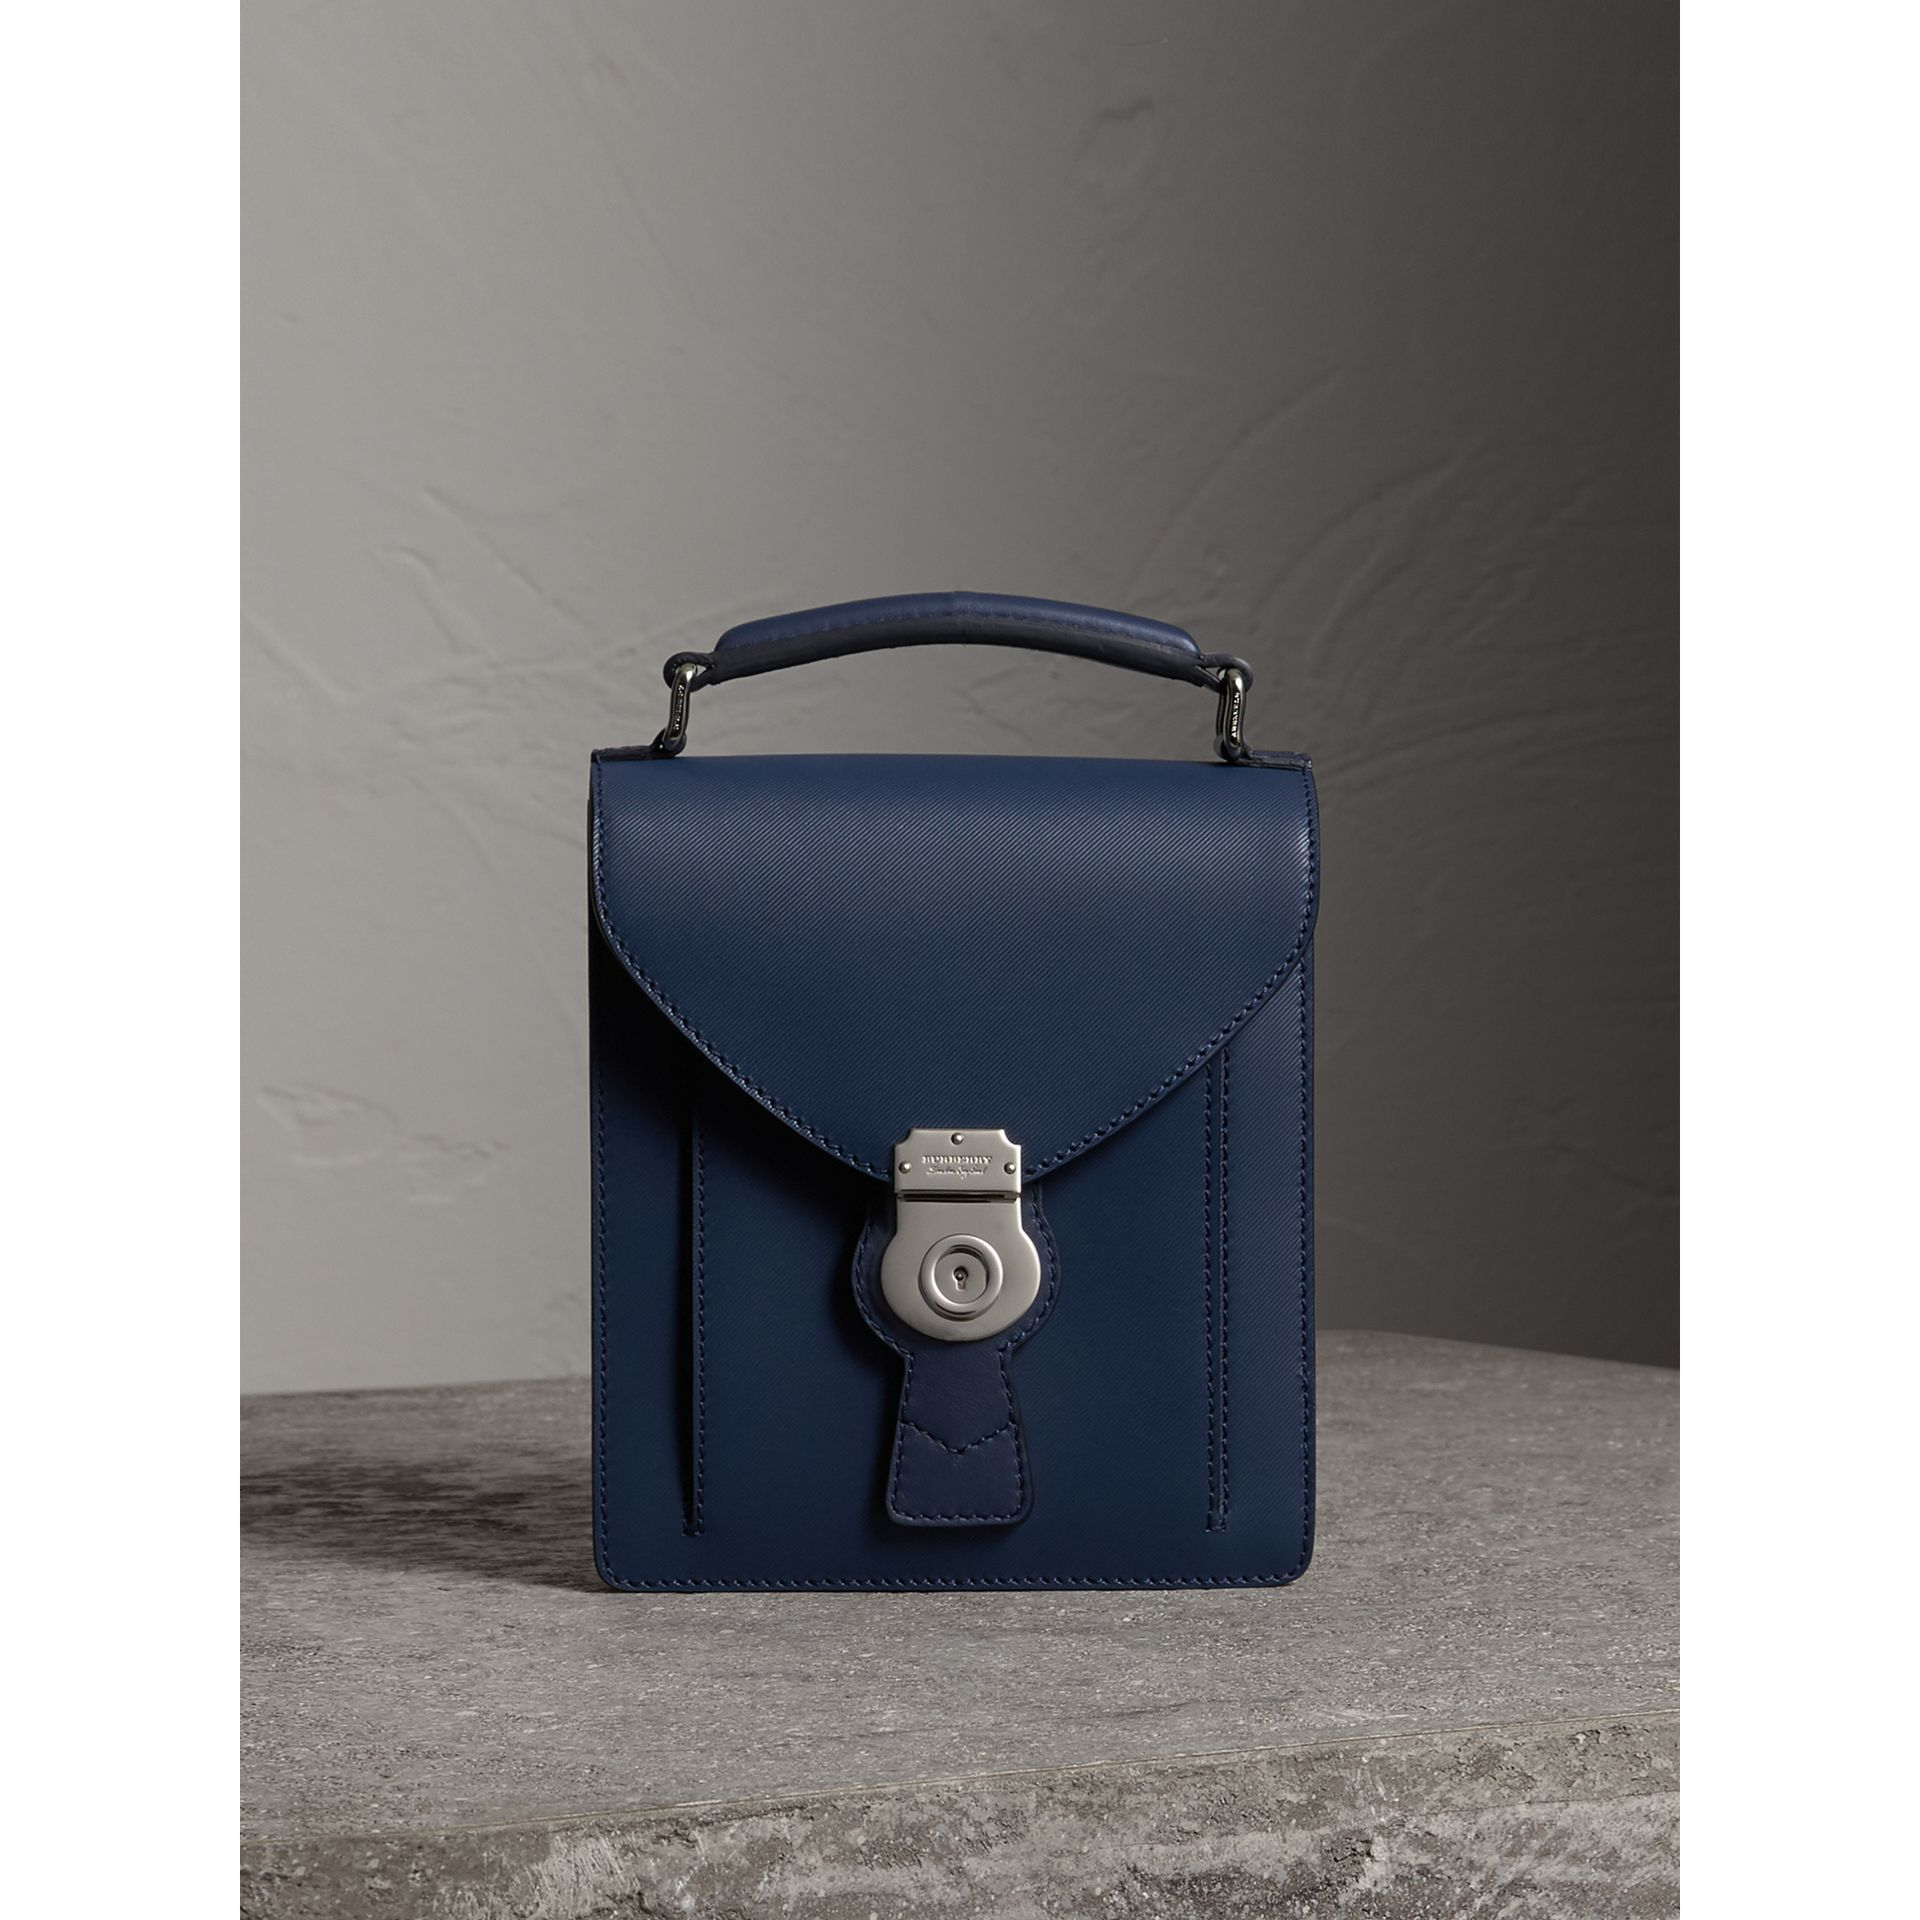 Burberry Ink Blue The Small DK88 Satchel